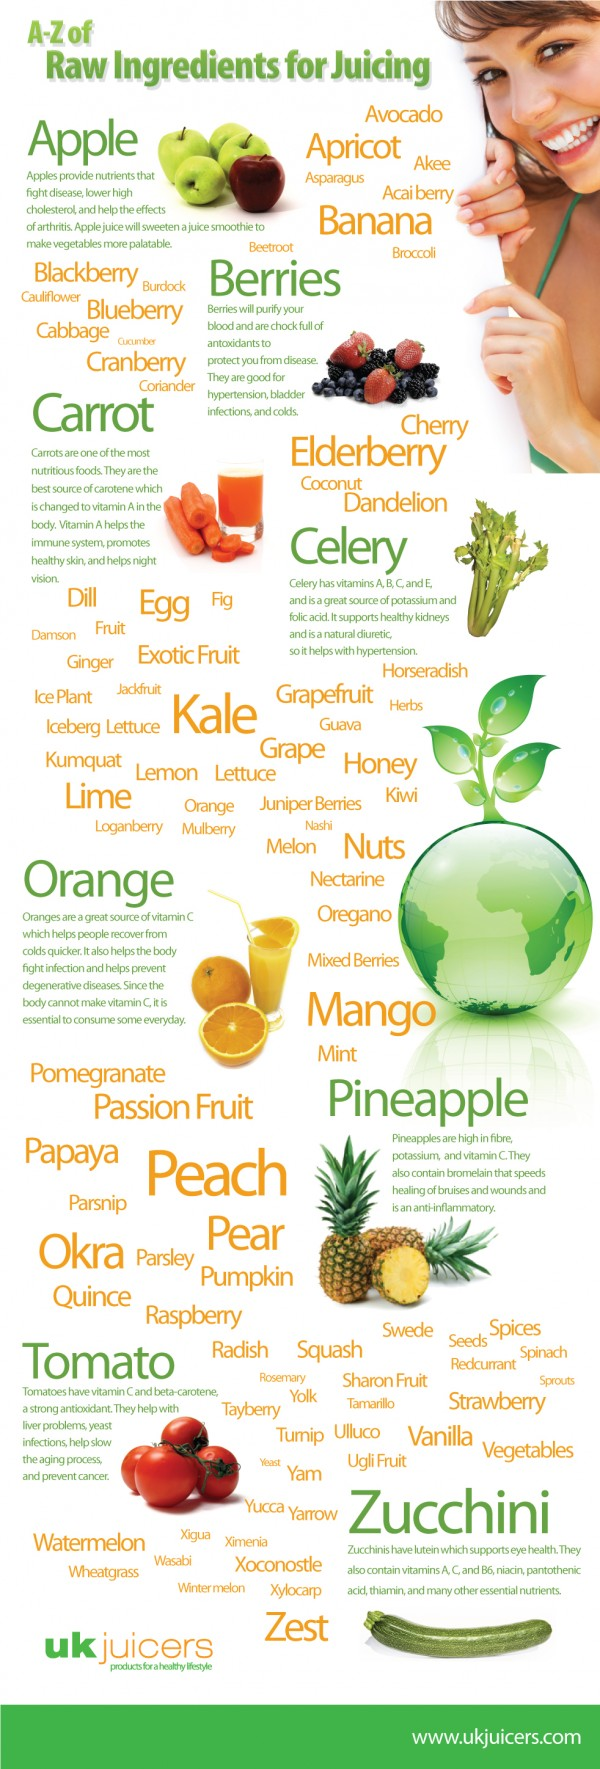 A-Z of raw ingredients for juicing infographic